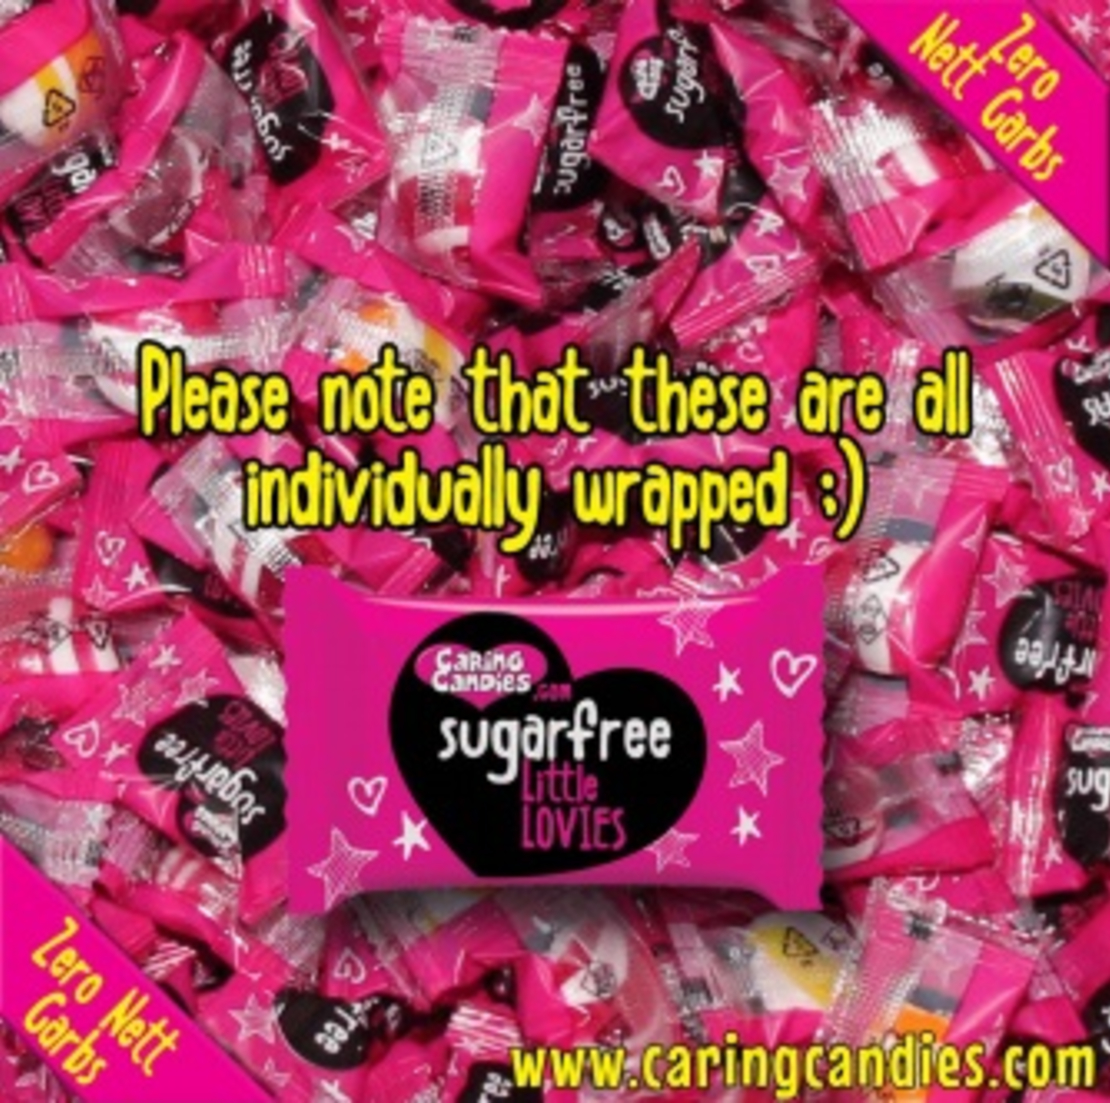 Caring Candies Little Lovies Fruits 100g or 1 kg